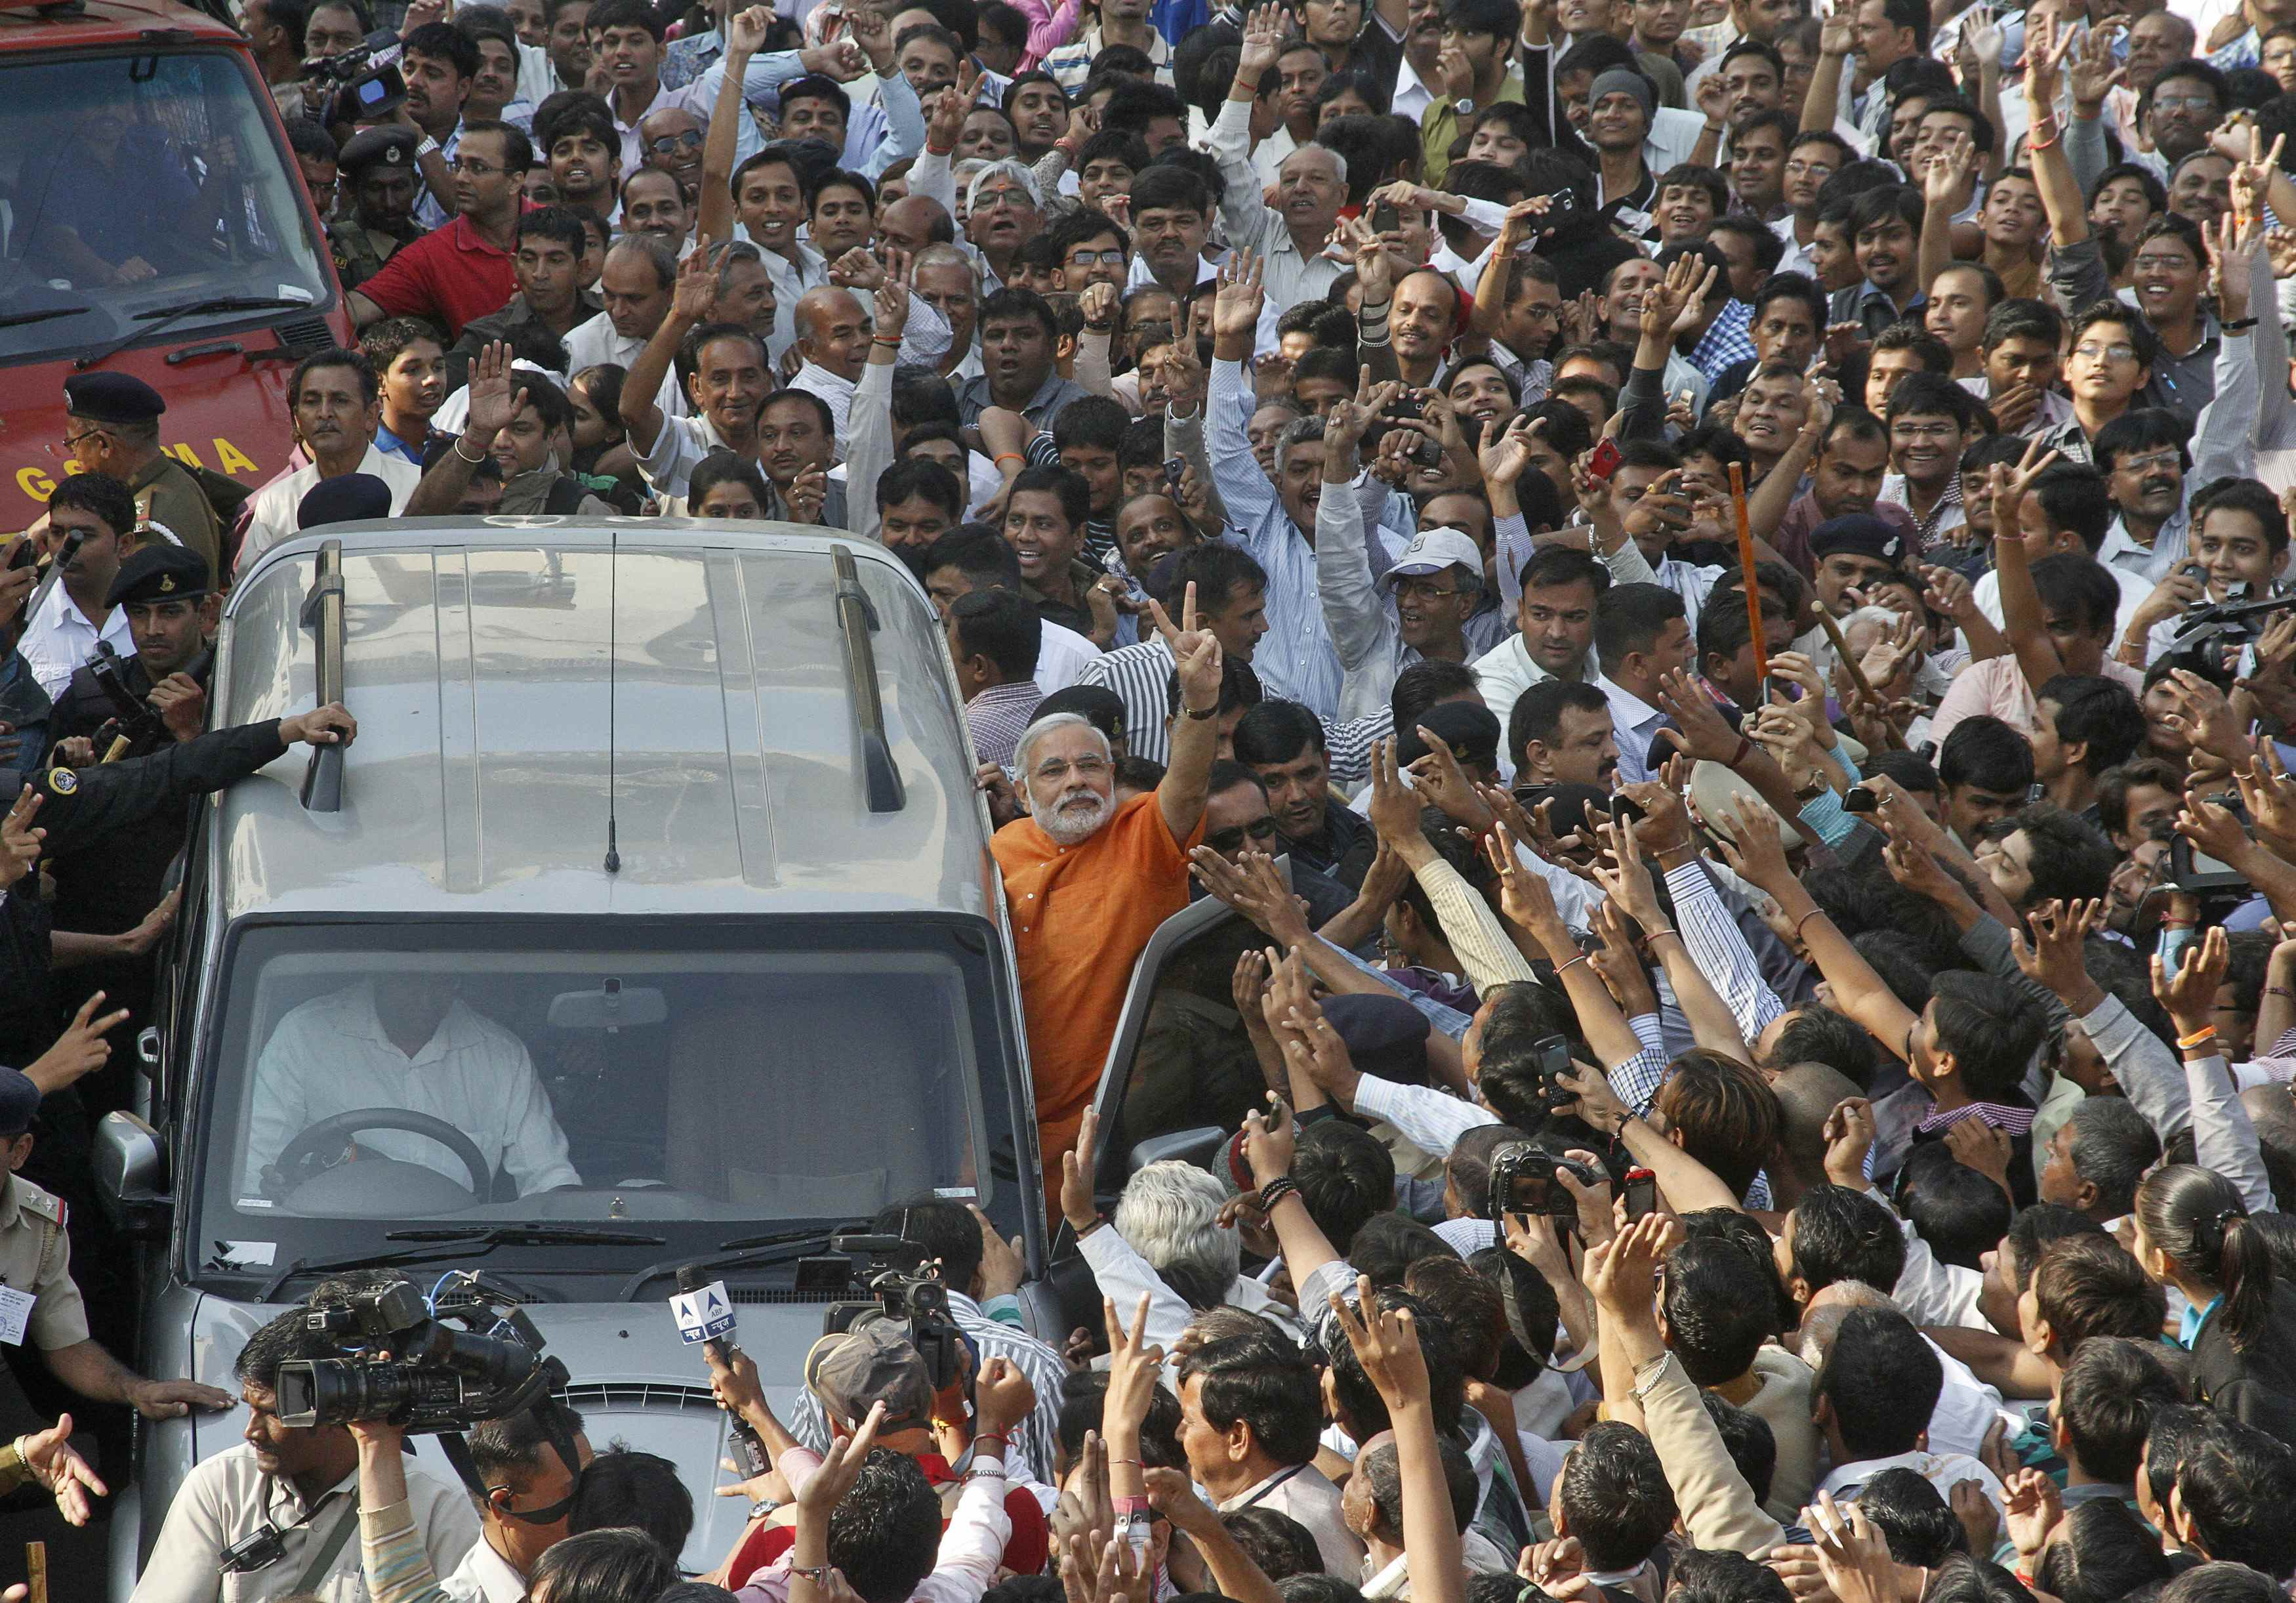 Gujarat state Chief Minister Narendra Modi gestures from his car after casting his vote during the second phase of state elections in the western Indian city of Ahmedabad